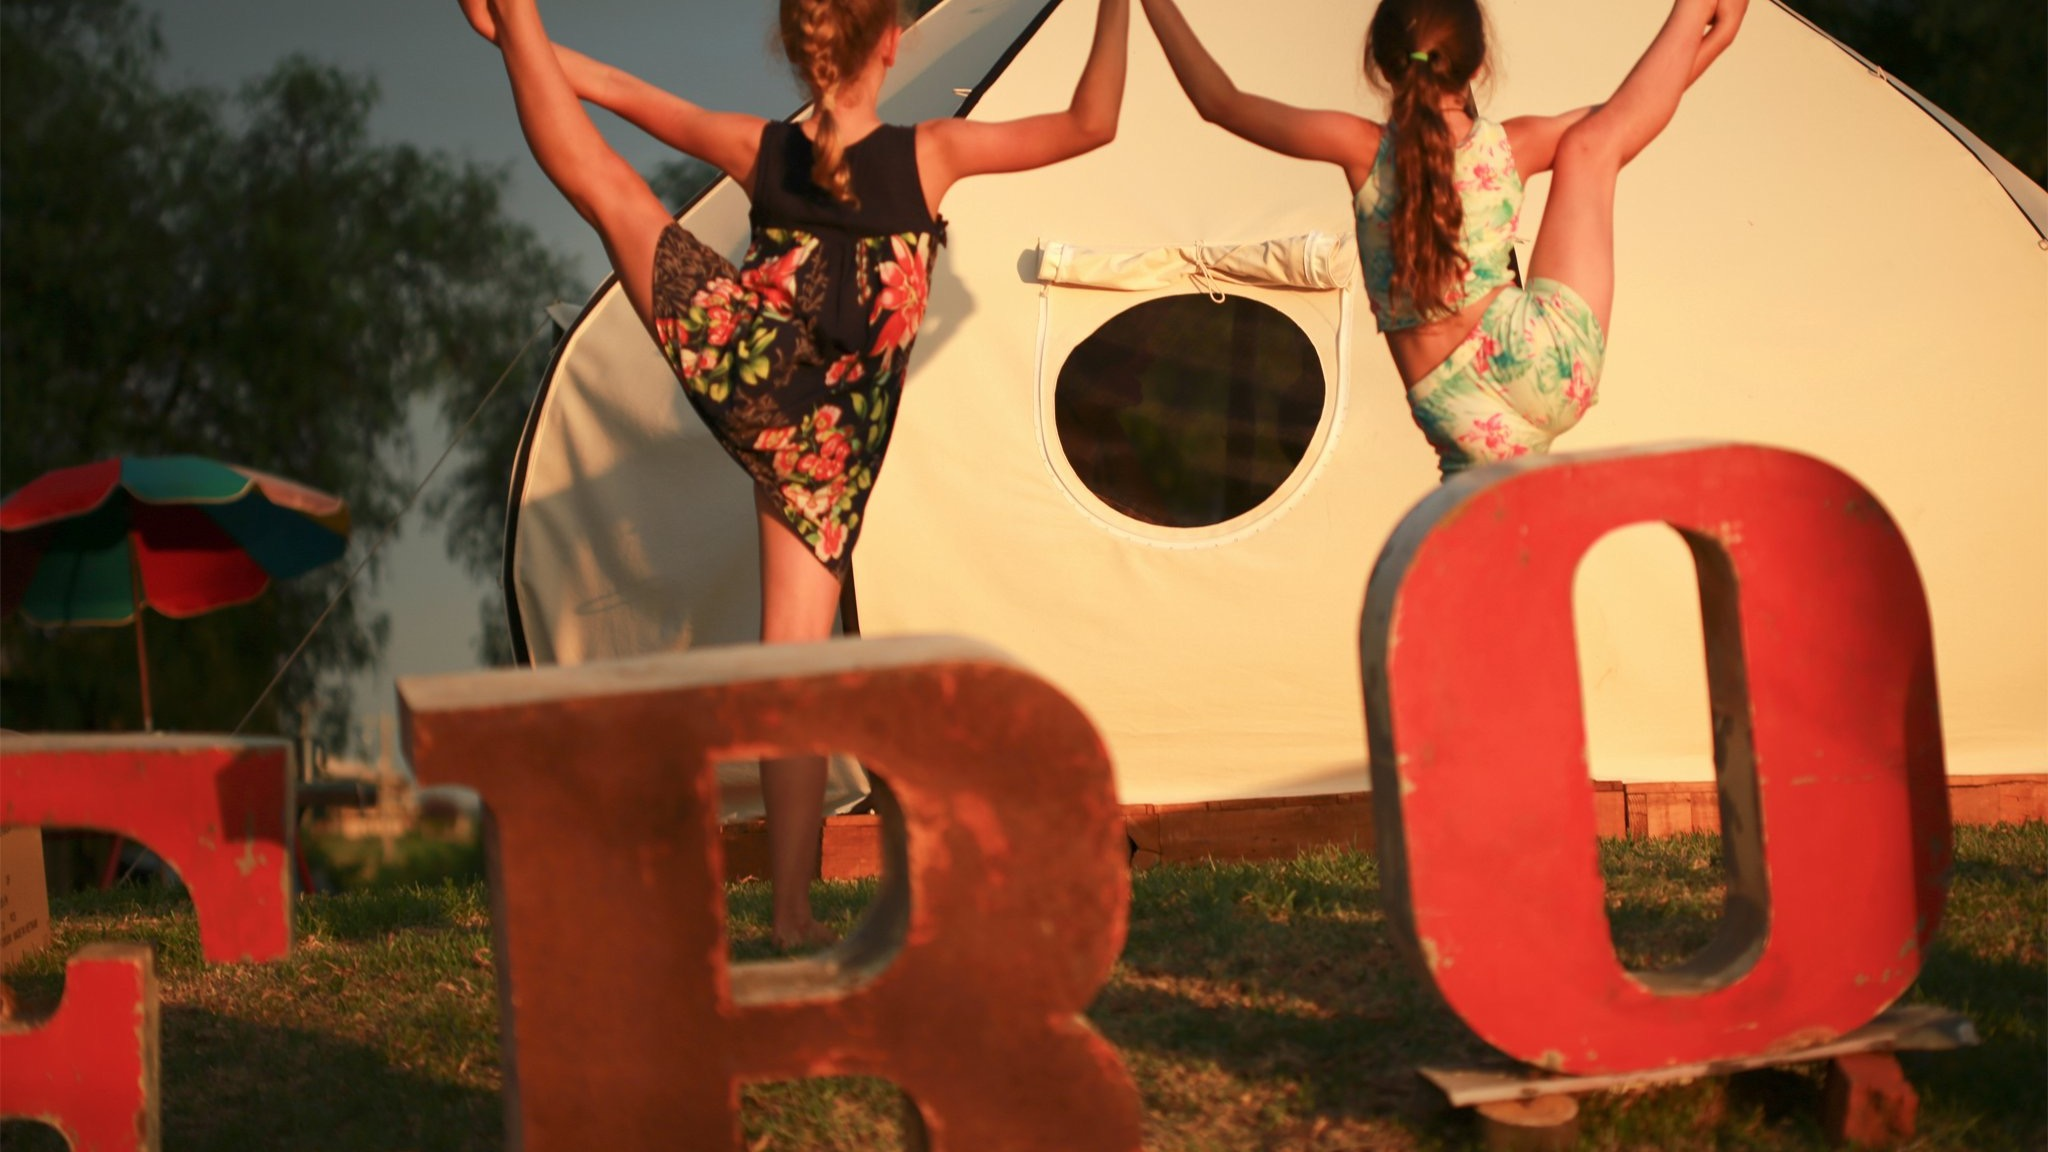 Sunset Ballet Girls, Nundra-Scapes Photography